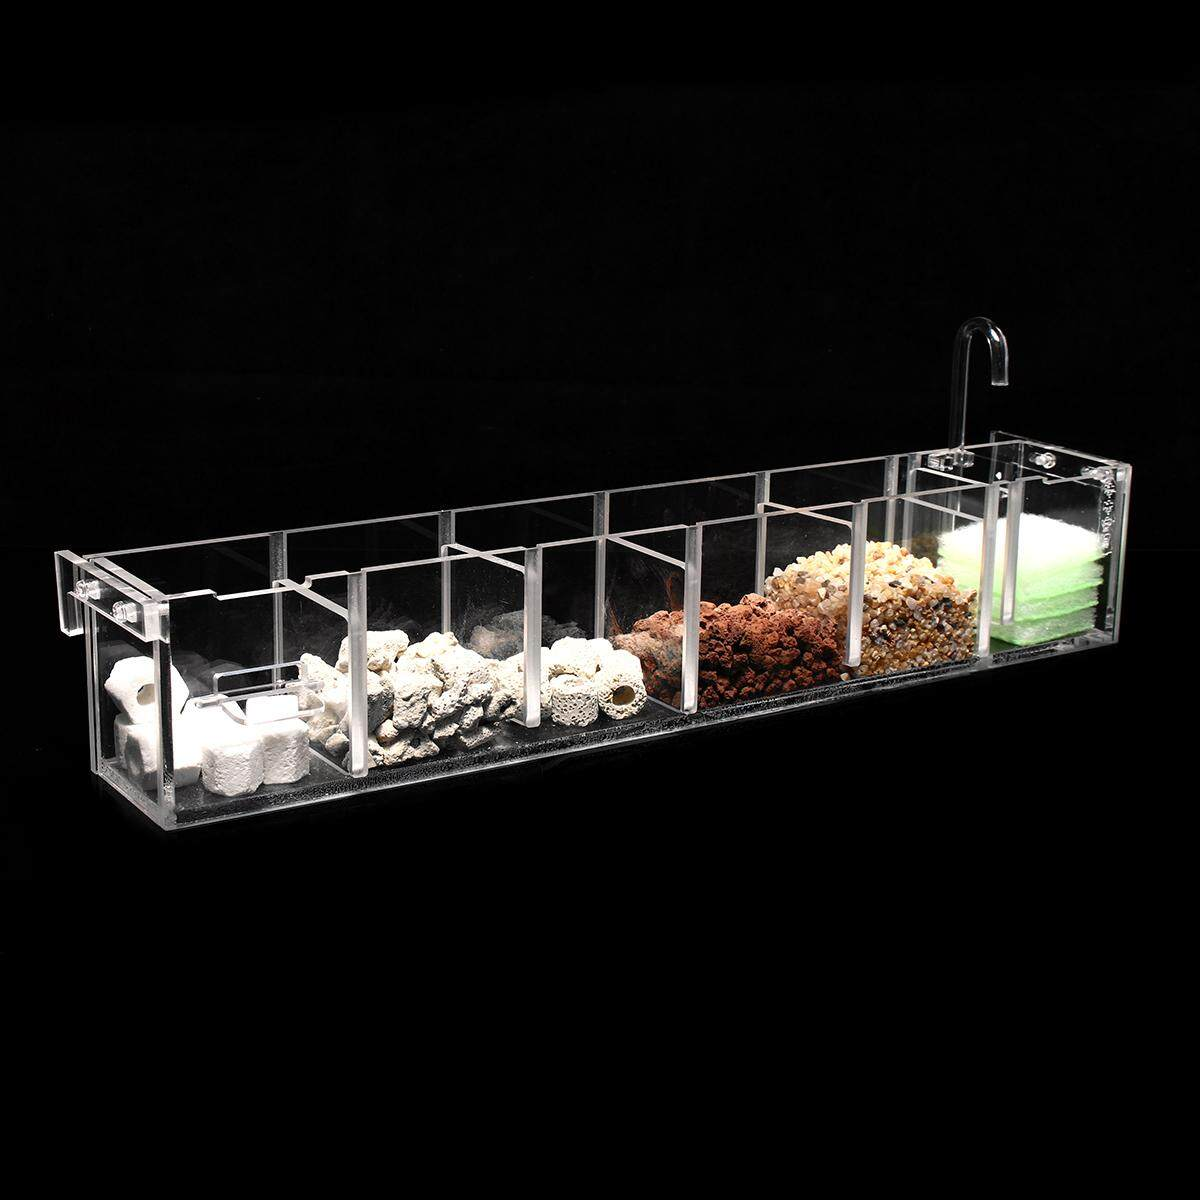 Acrylic Aquarium Fish Tank External Hang On Filter Box With Water Pump  6 Grids By Moonbeam.